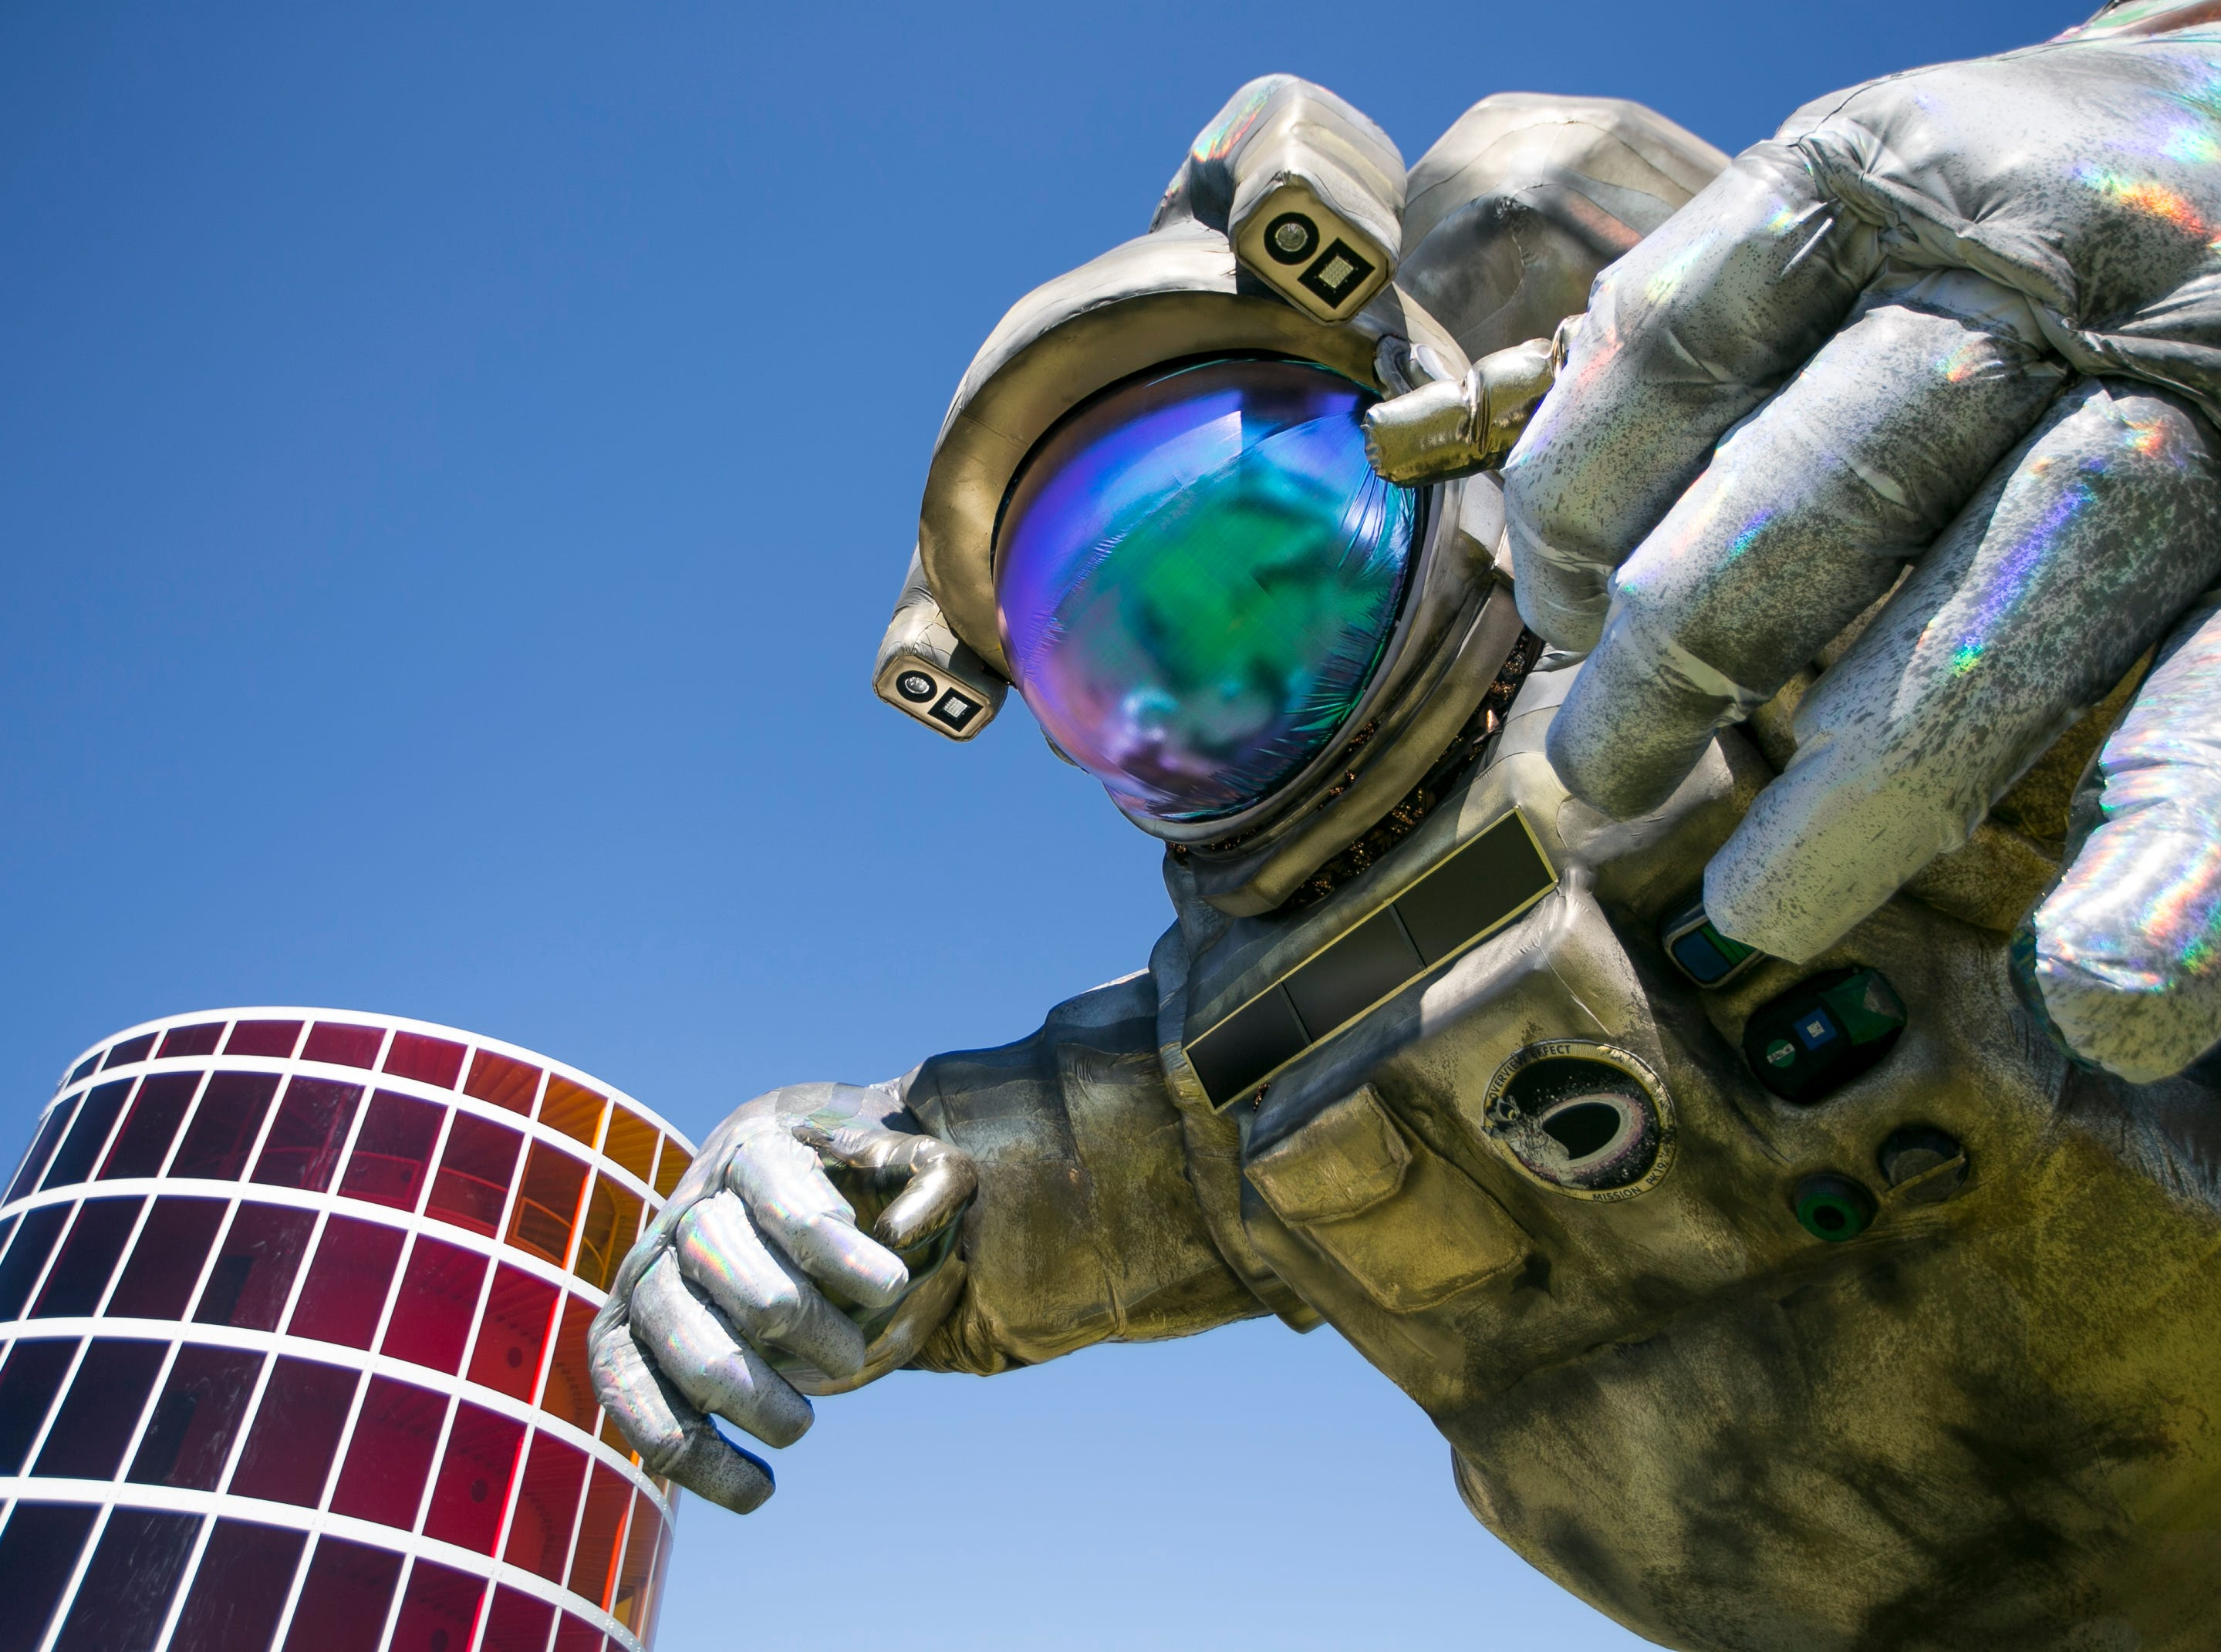 """Art installation the """"Overview Effect"""" astronaut by Poetic Kinetics looms at the Coachella Valley Music and Arts Festival in Indio, Calif. on Friday, April 12, 2019."""